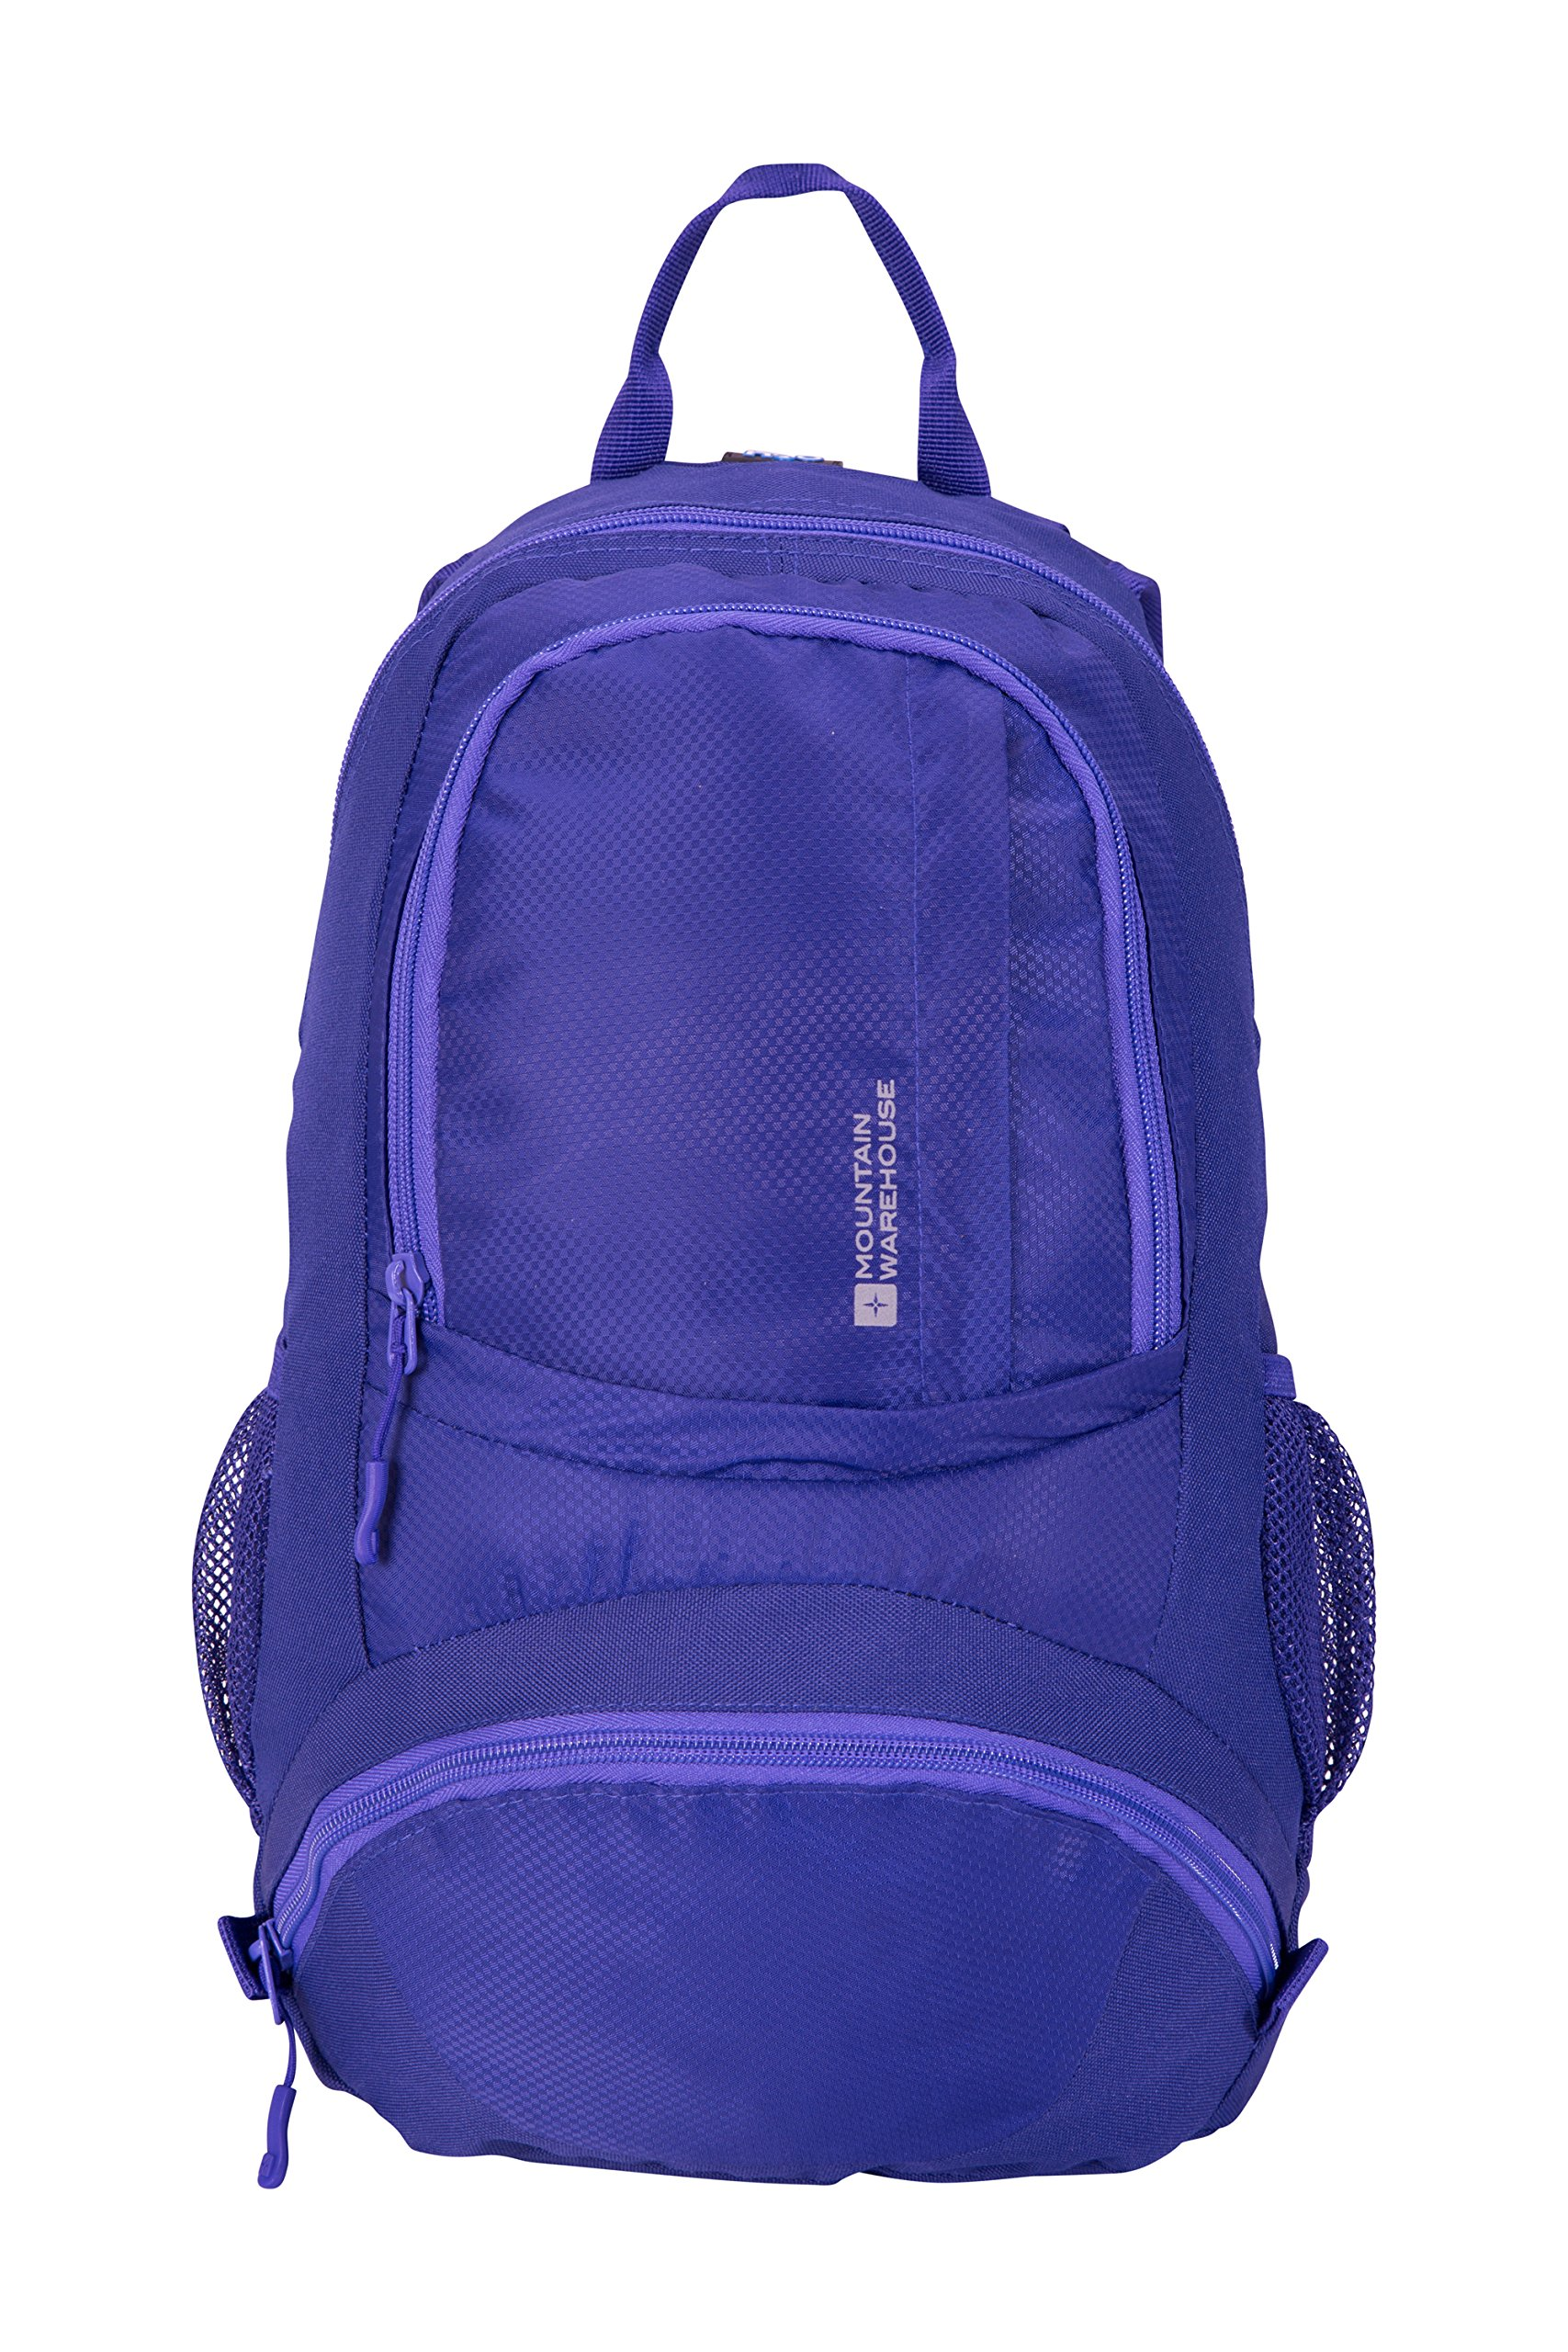 Mountain Warehouse Endeavour 12L Backpack - Durable Summer Rucksack Lilac